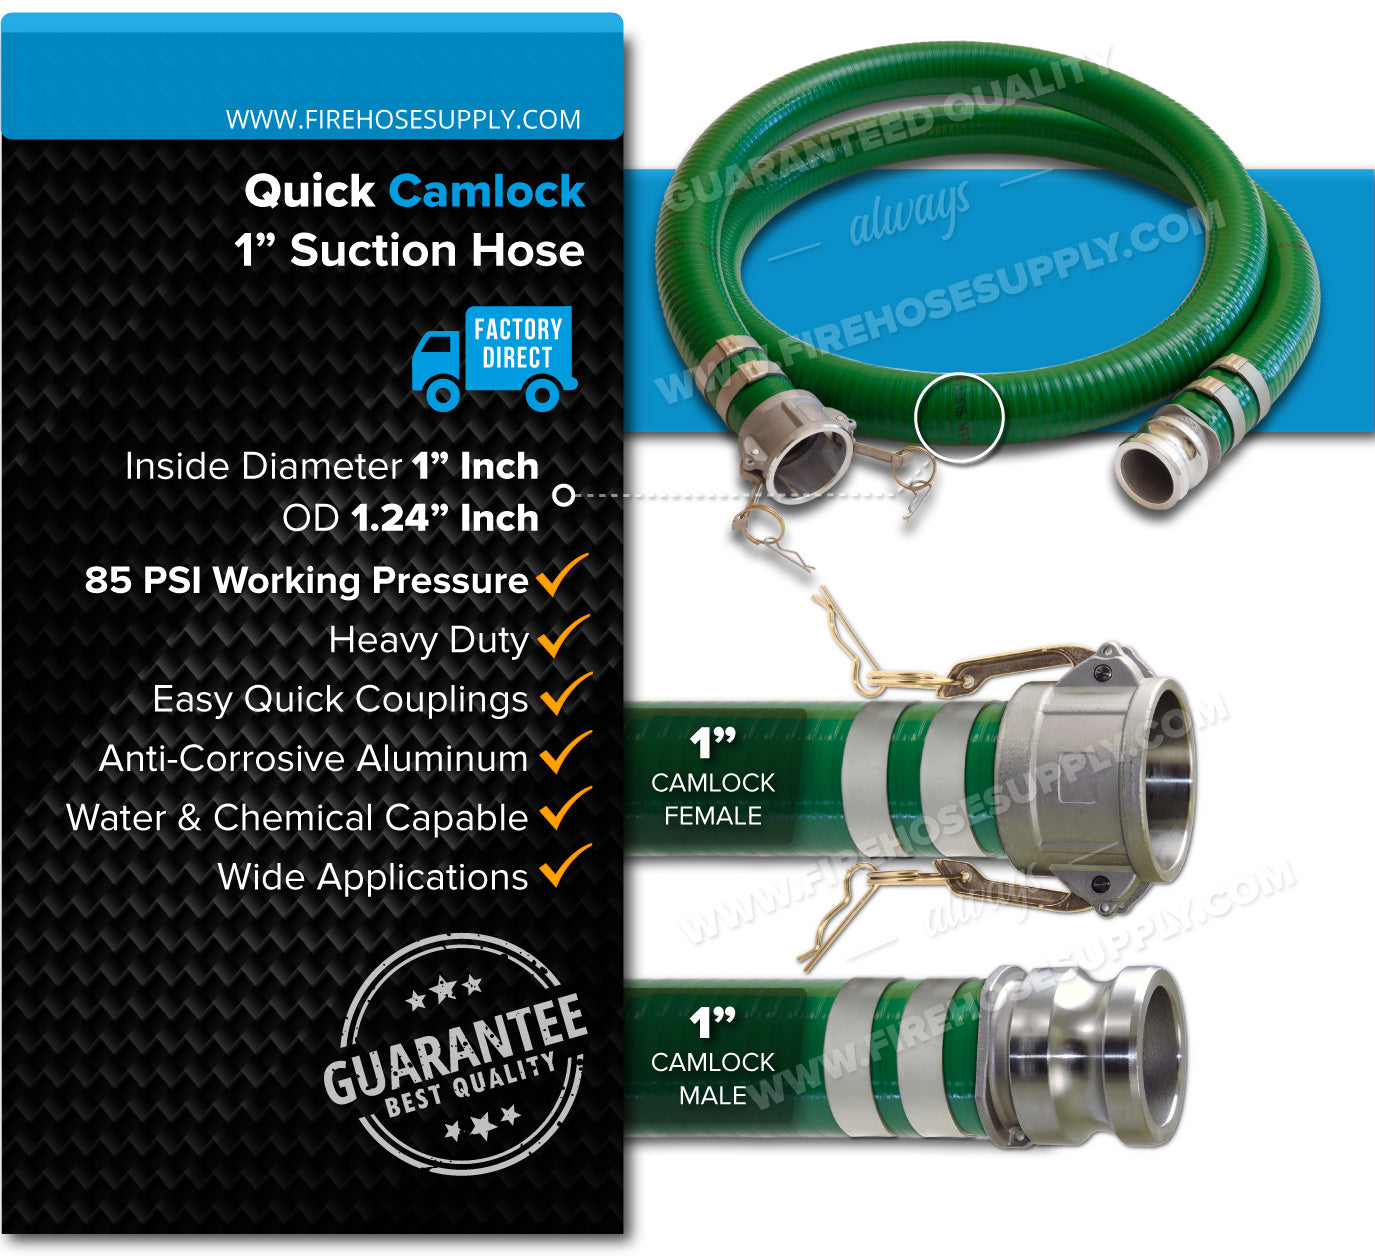 1 Inch Camlock Green Suction Hose Overview